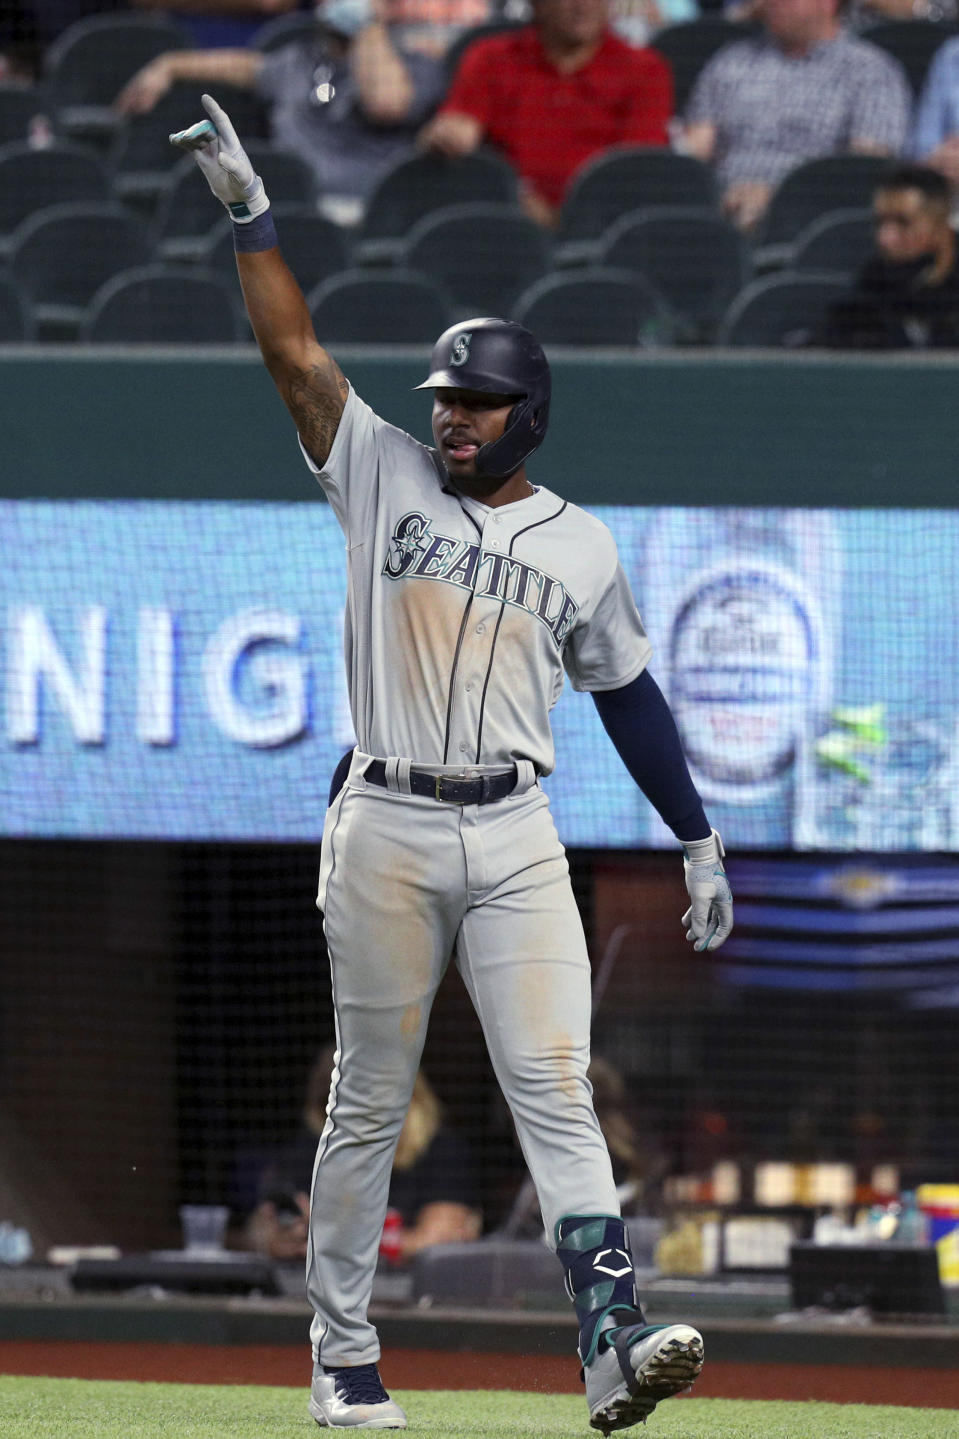 Seattle Mariners' Taylor Trammell gestures toward Mitch Haniger after scoring against the Texas Rangers during the seventh inning of a baseball game Friday, May 7, 2021, in Arlington, Texas. (AP Photo/Richard W. Rodriguez)